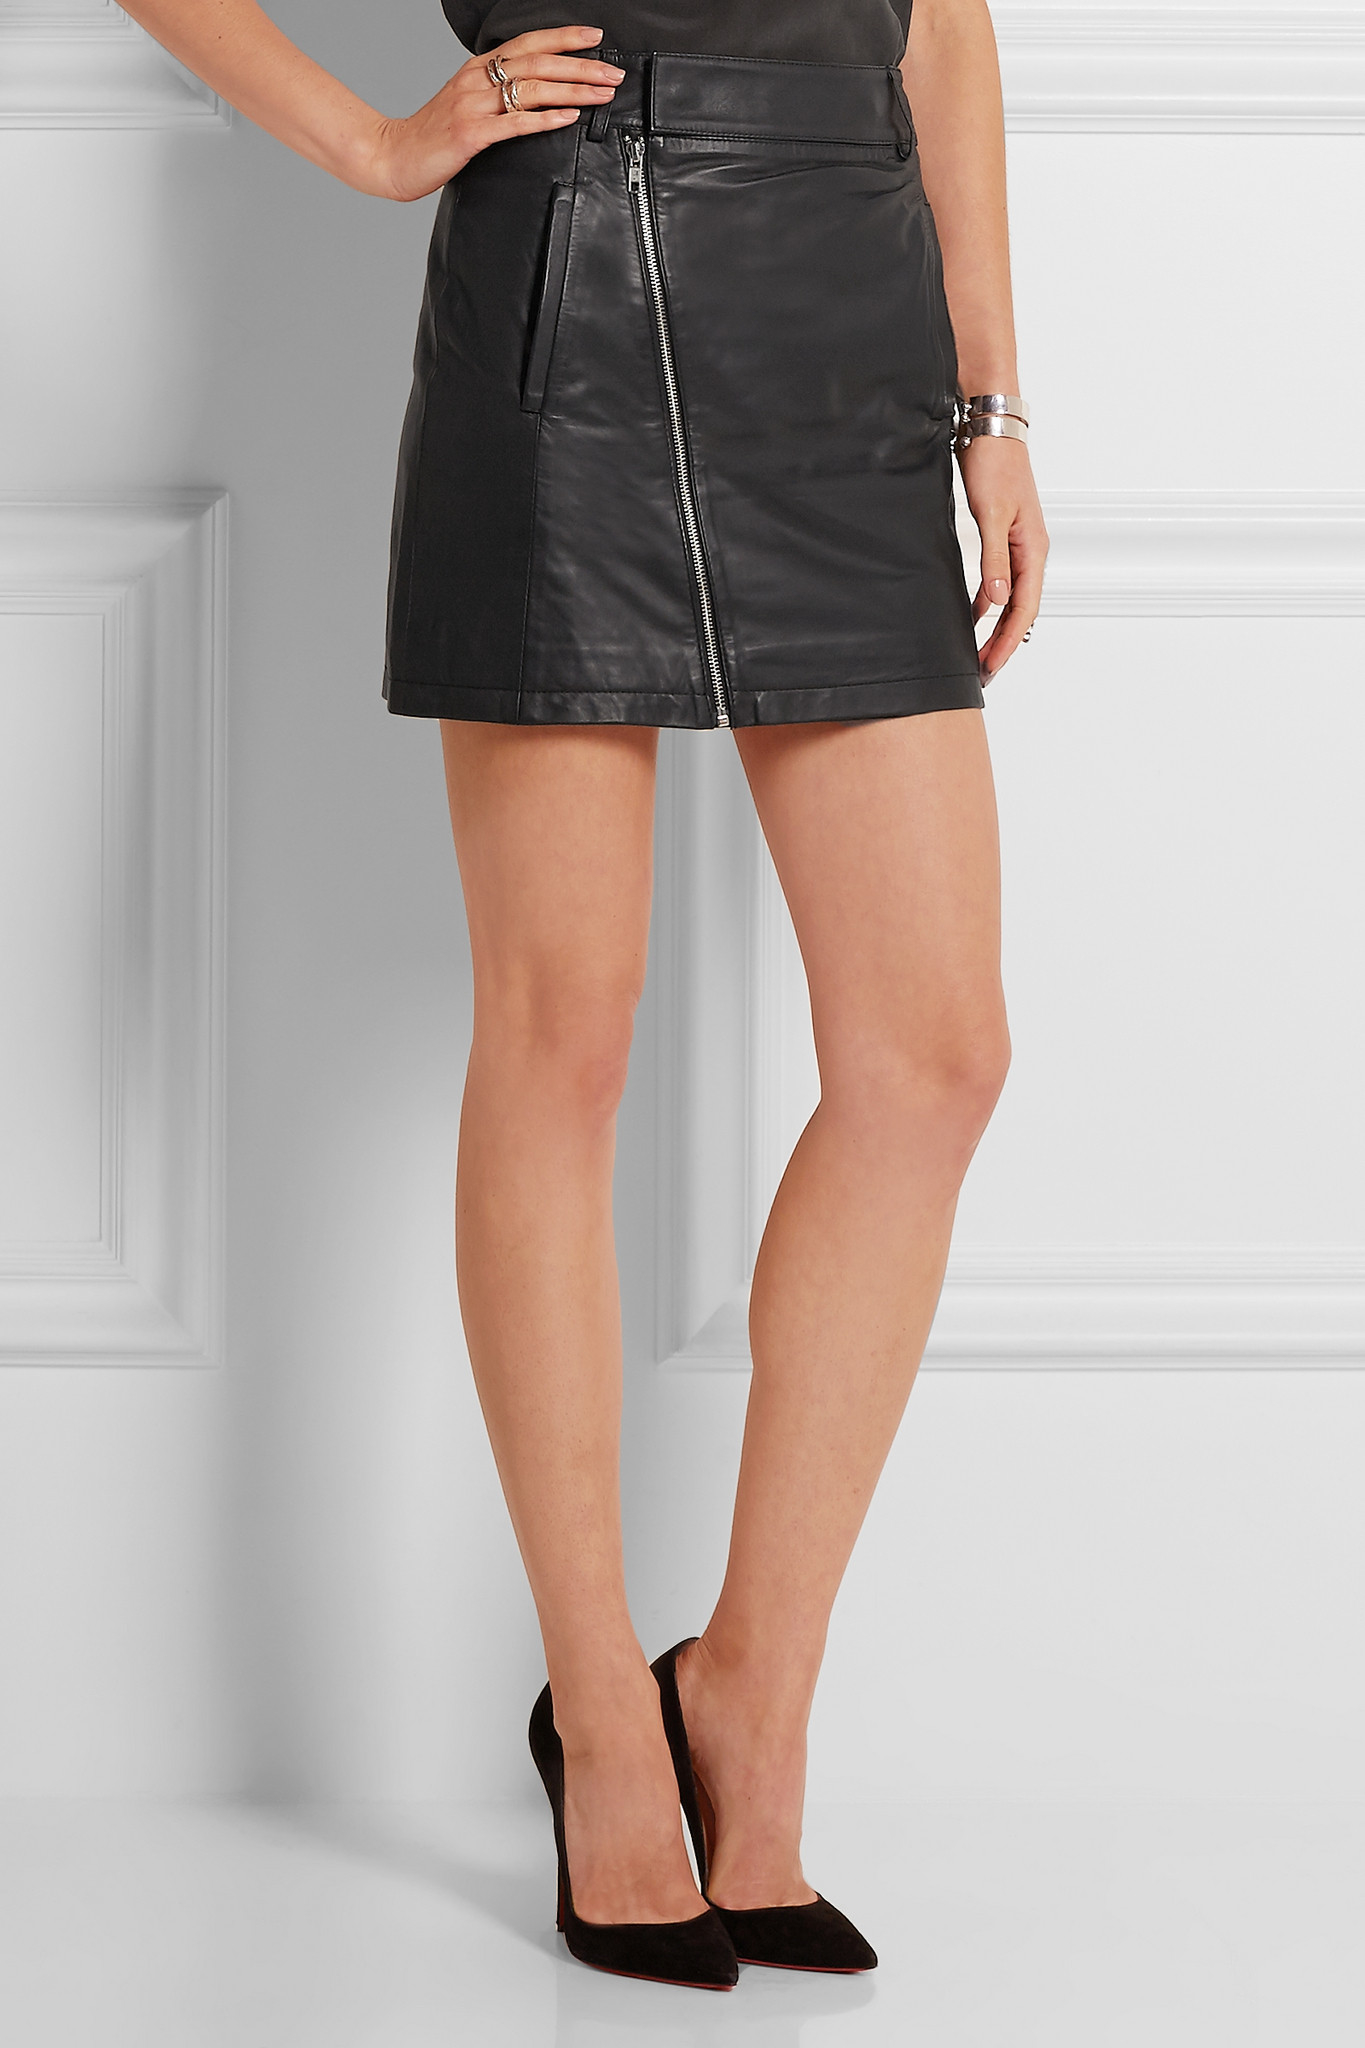 53b06afca8 Dion Lee Leather Mini Skirt in Black - Lyst